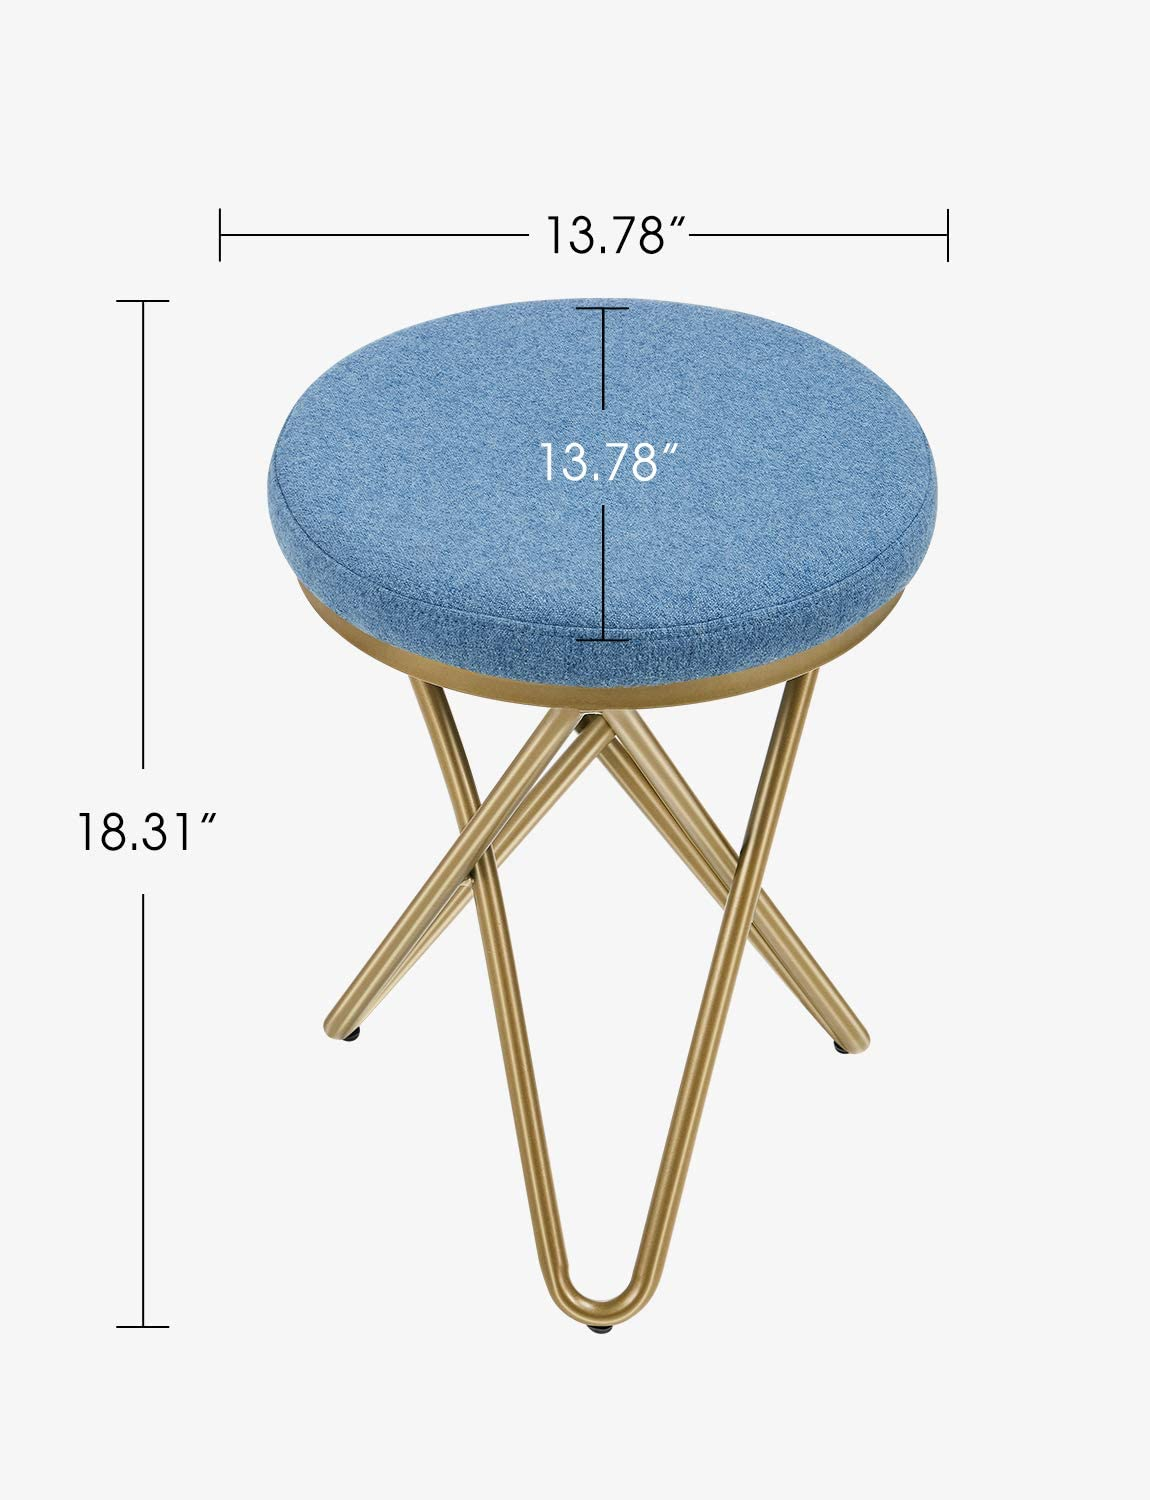 Kealive Vanity Chair Vanity Stool with Metal Legs, Small Padded Makeup Stool for Bathroom Bedroom Dresser, Round Modern Fabric vanity bench Footstool Easy Assembly, Blue